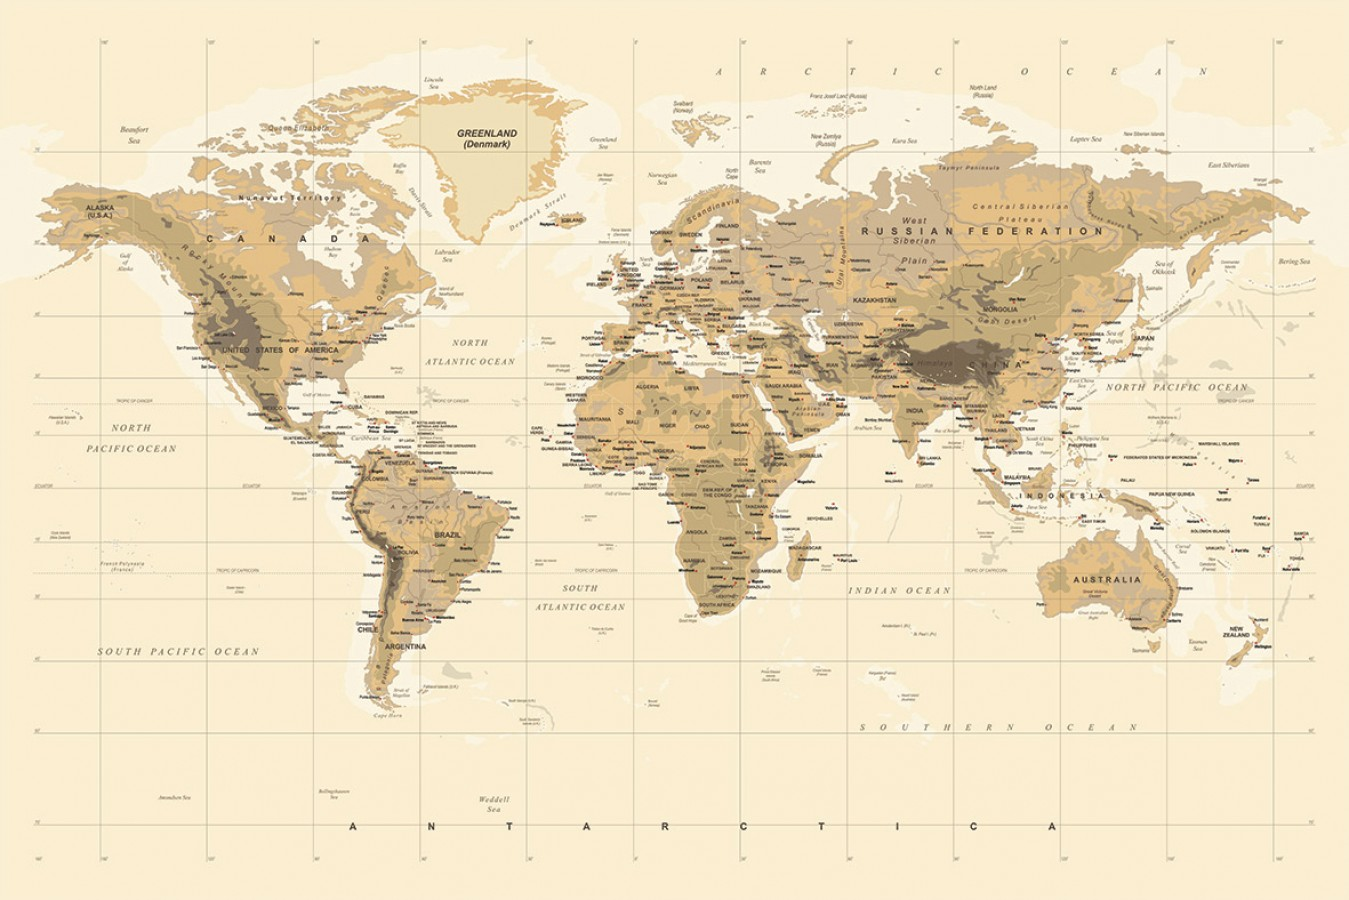 Fotomural Geographic World Map A08-M903 Fotomural Geographic World Map A08-M903